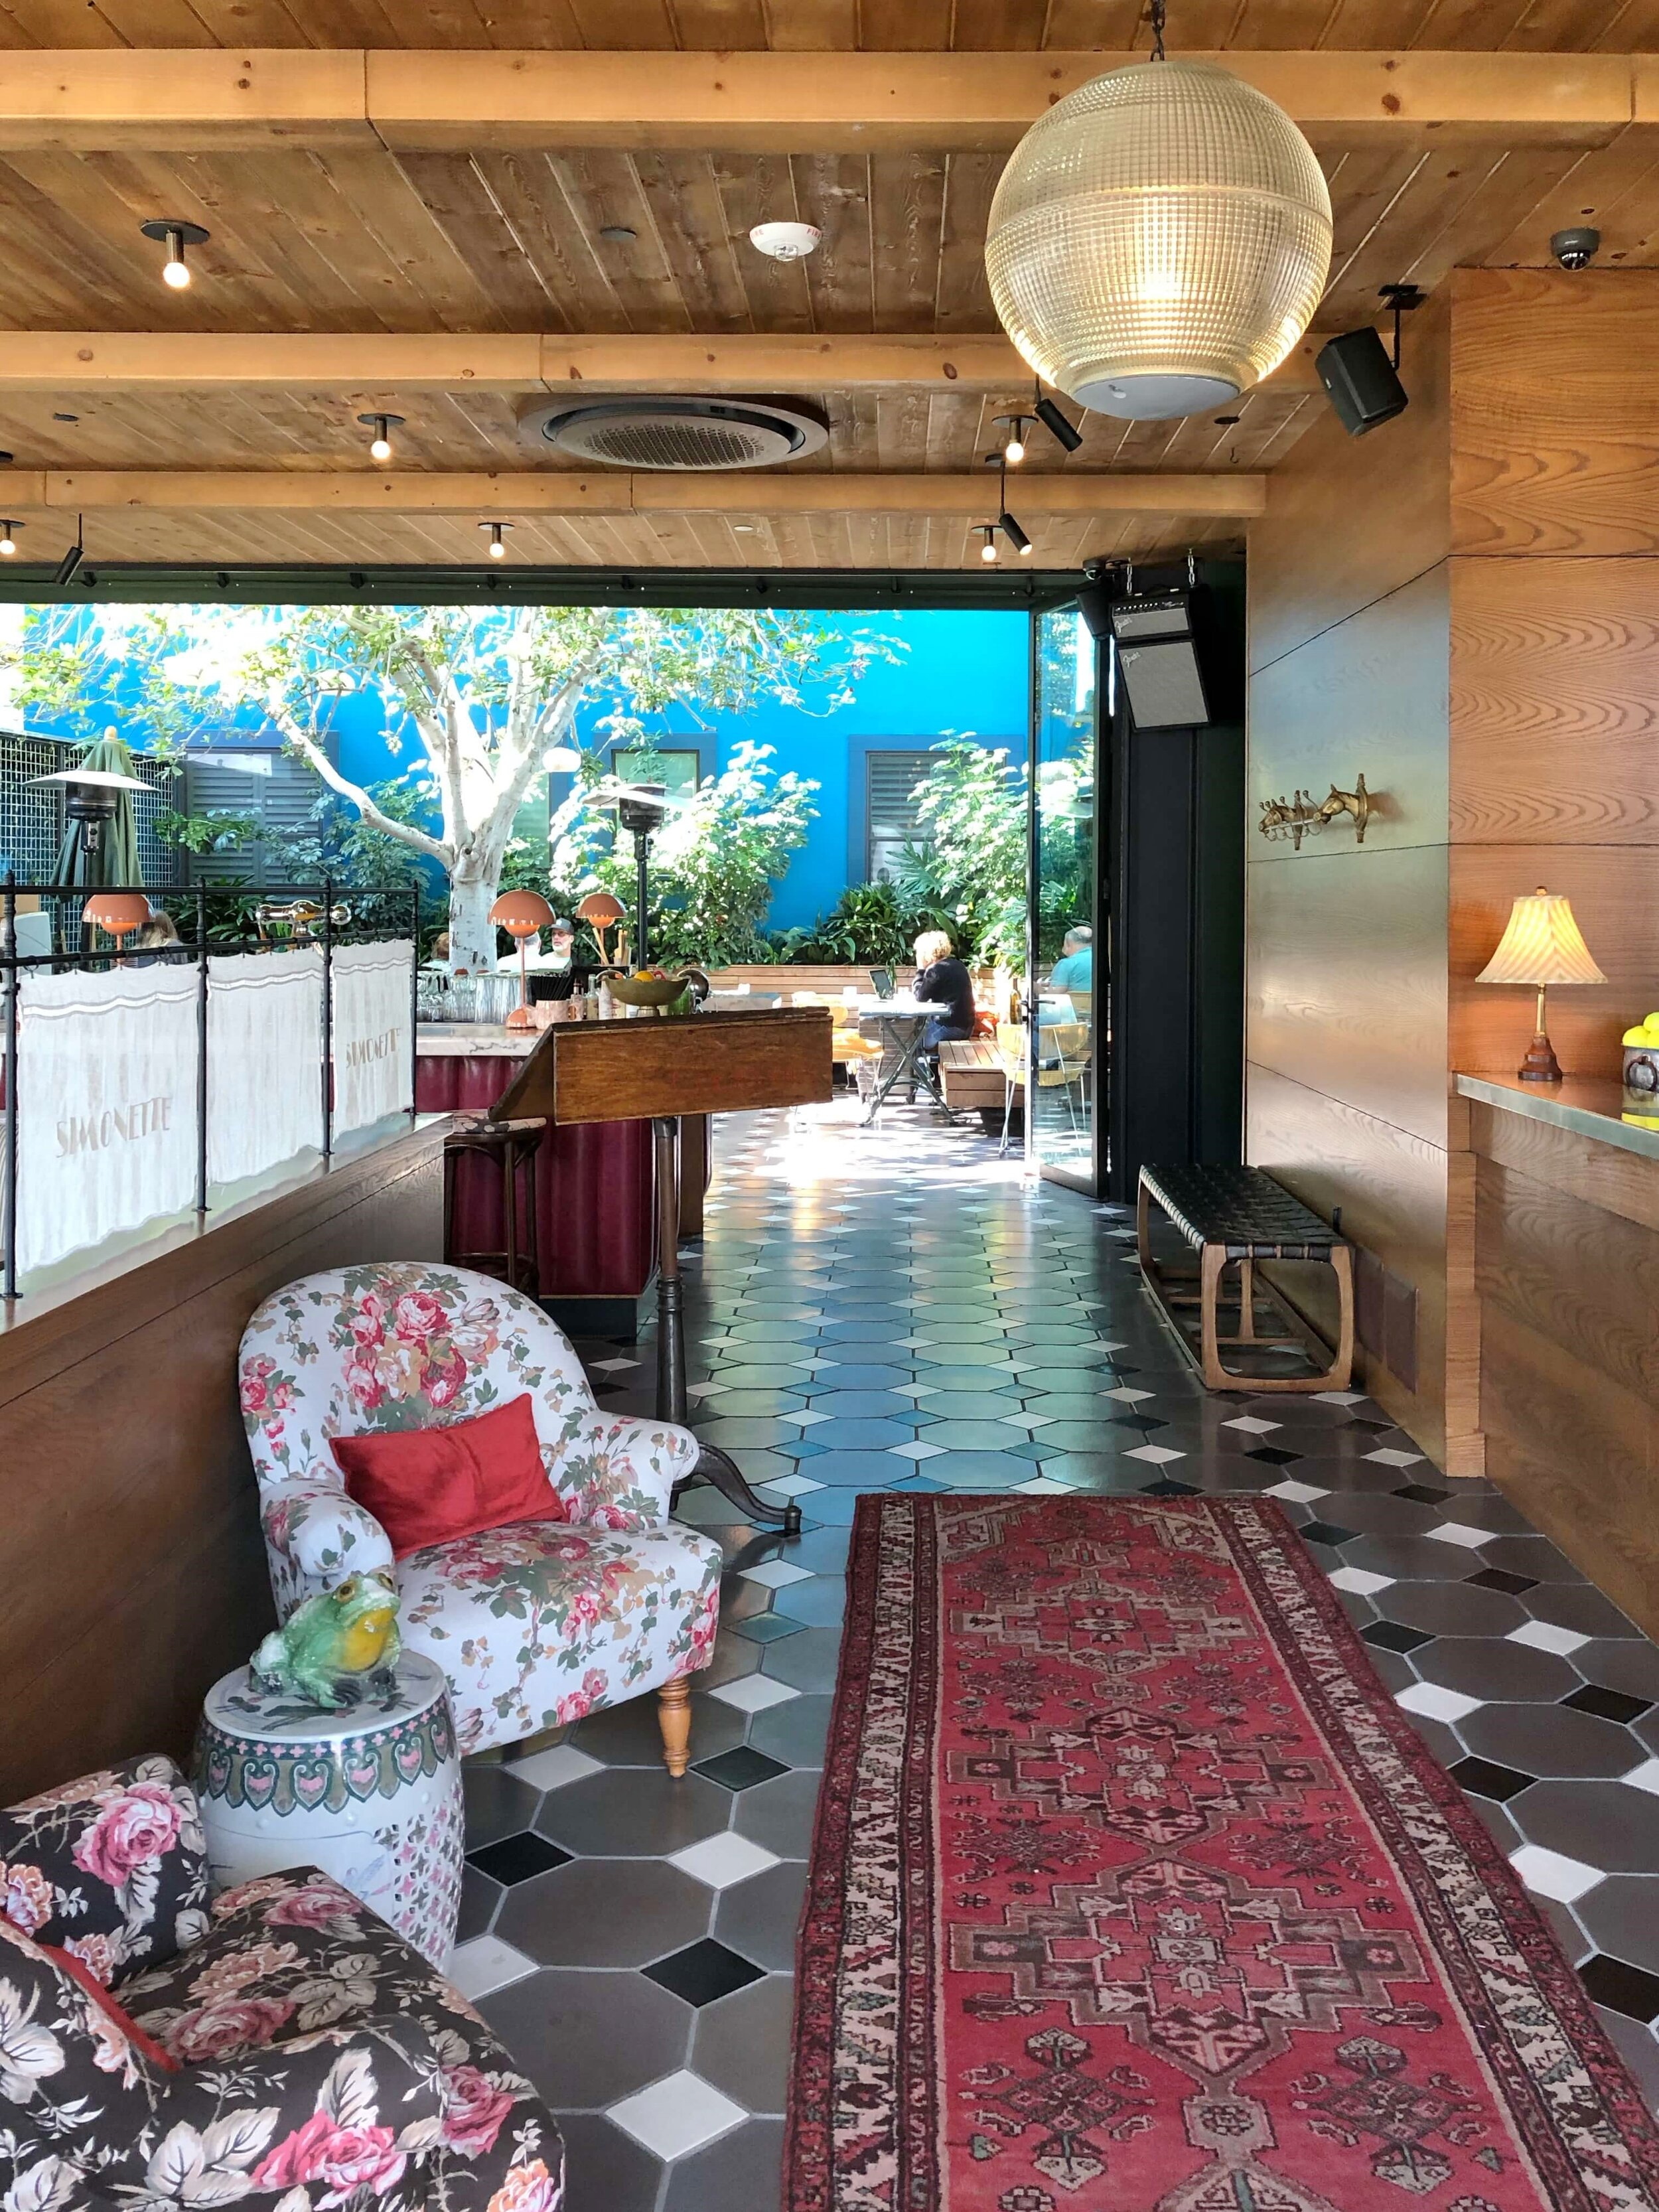 Vintage furnishings feature in the Palihotel, Culver City, a restored Art Deco building with a bohemian modern vibe. #modernboho #artdeco #hotellobby